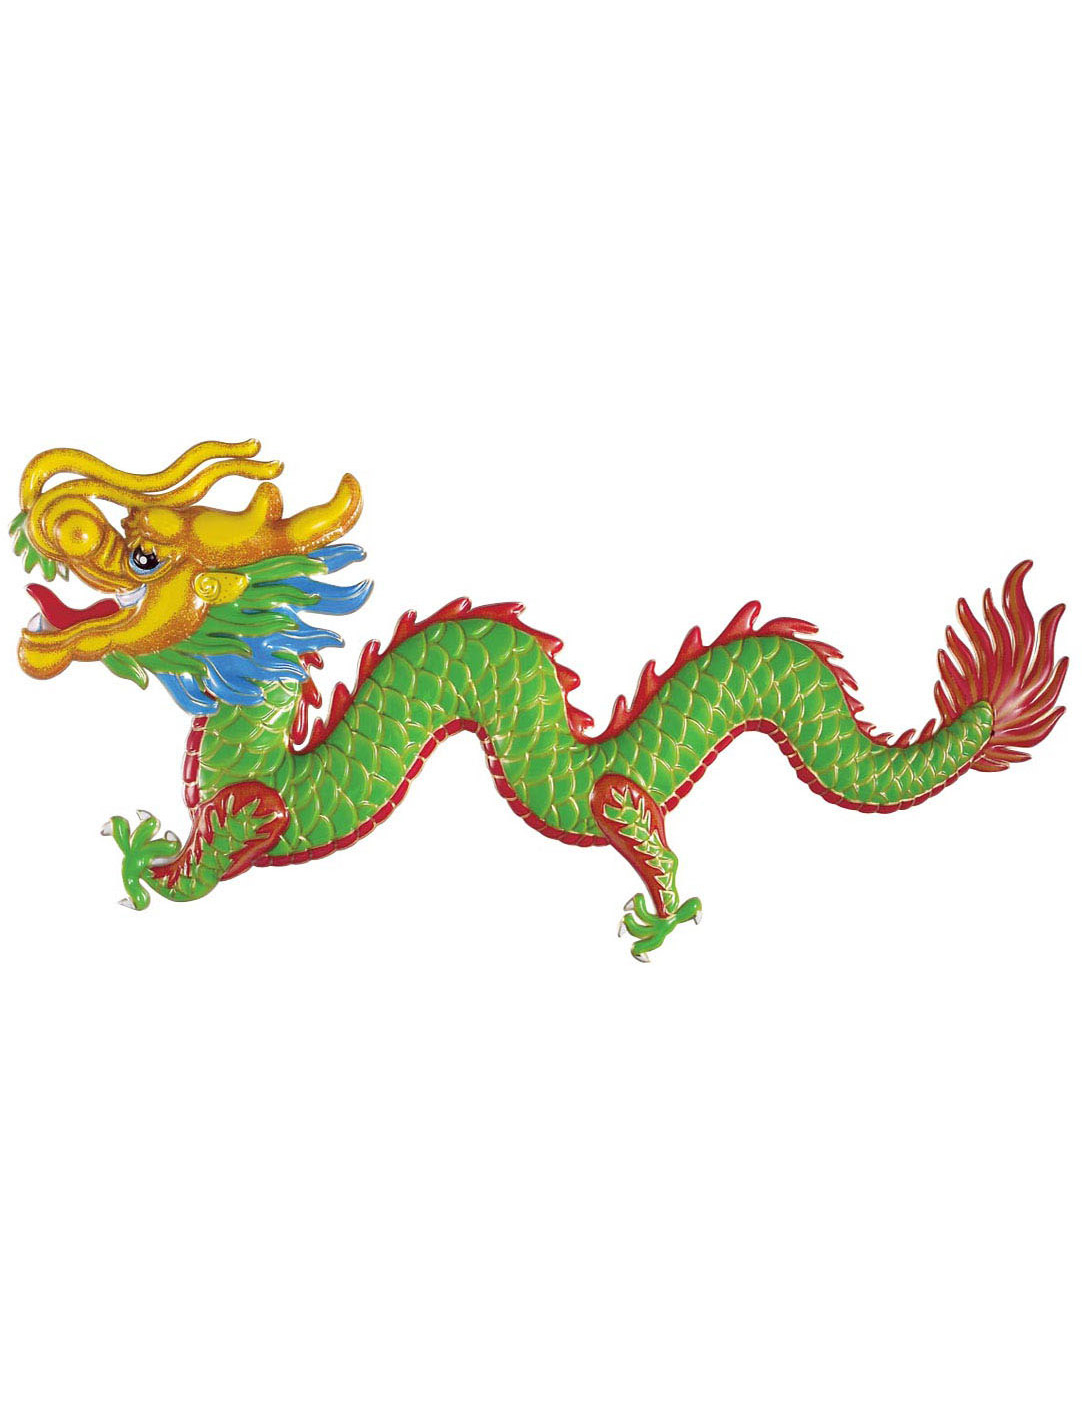 D coration dragon nouvel an chinois achat de decoration animation sur vega - Decoration nouvel an ...